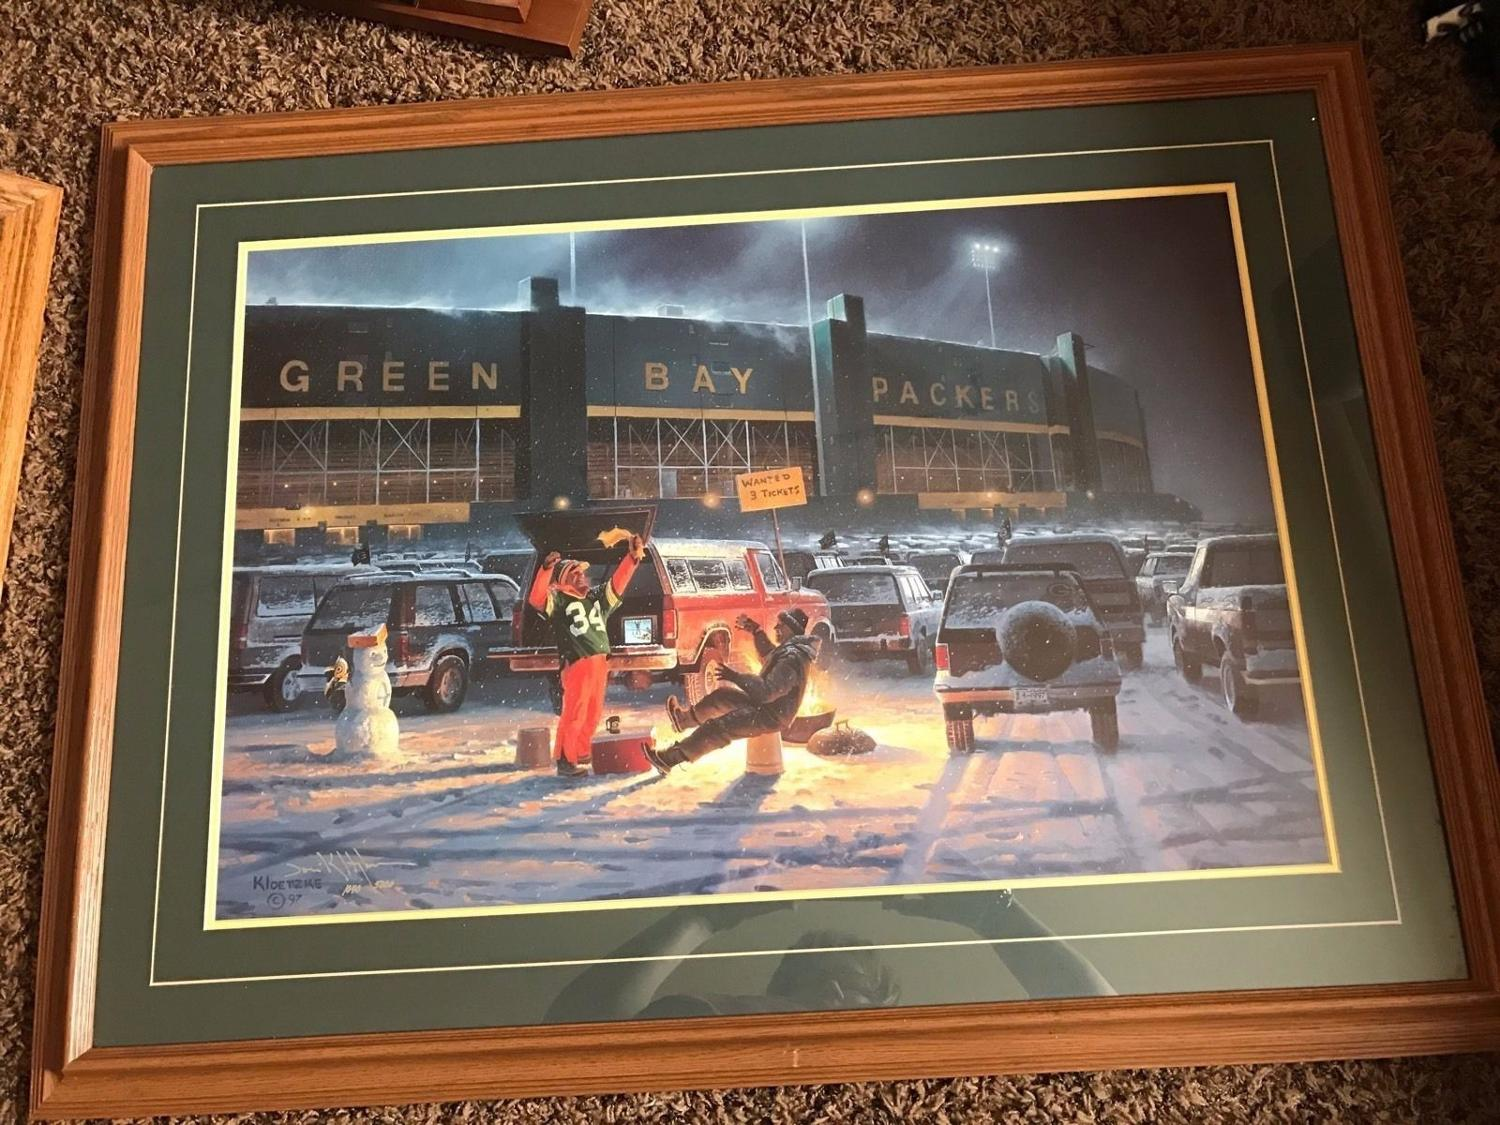 Find More Limited Edition Die Hards Green Bay Packers